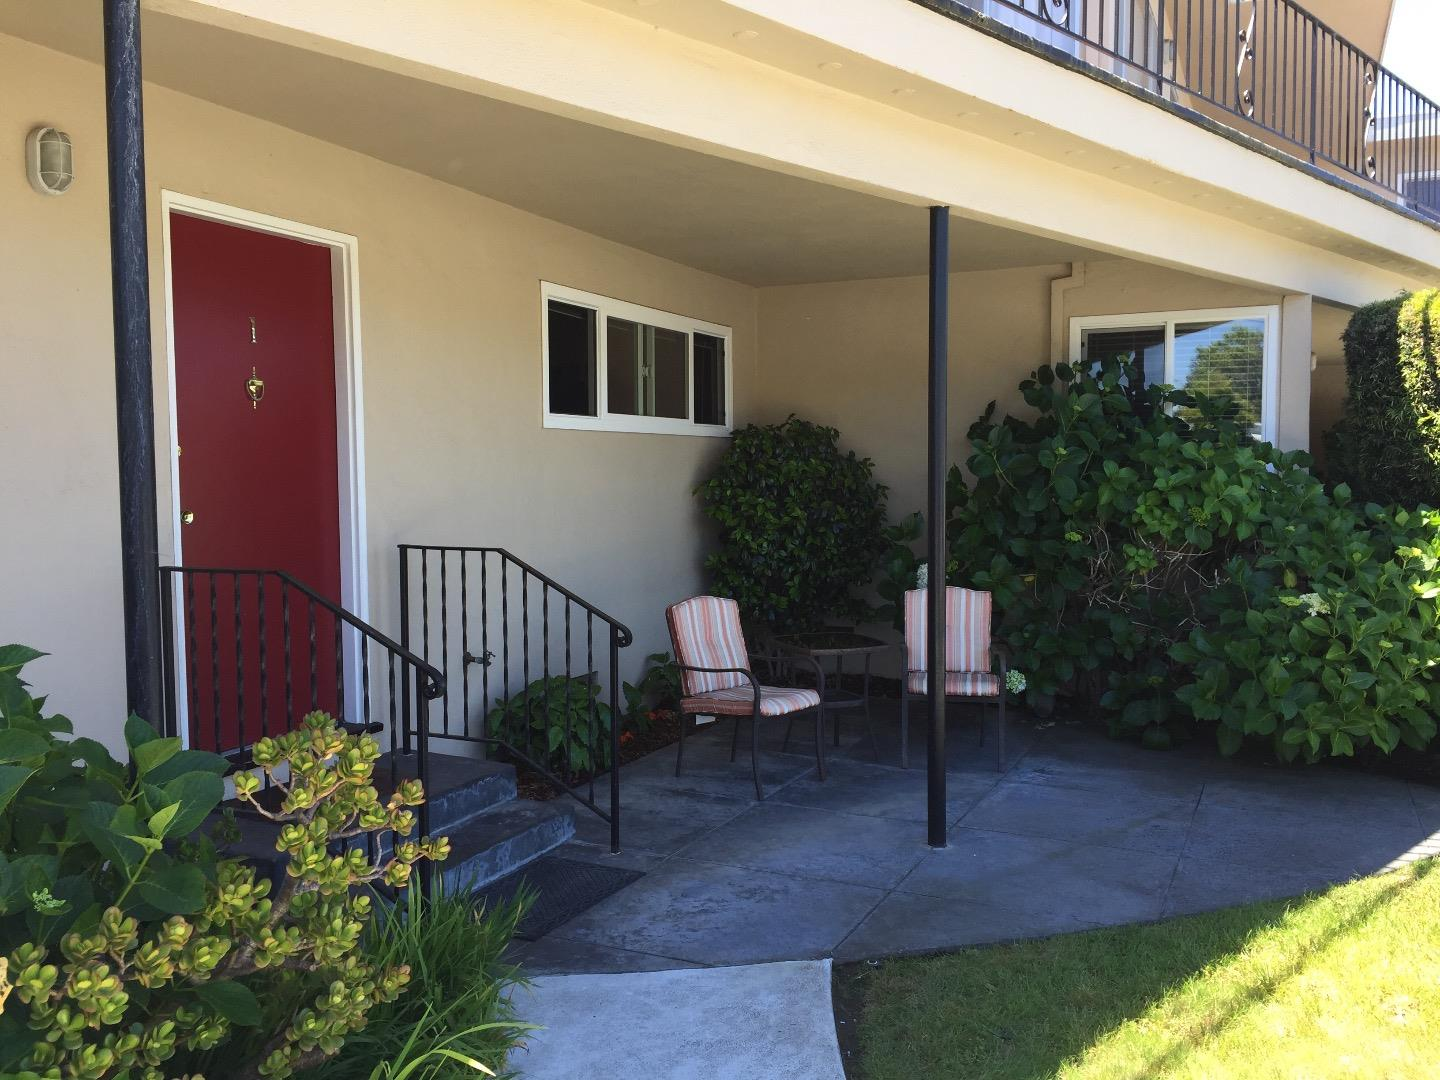 Additional photo for property listing at 911 38th Avenue 911 38th Avenue Santa Cruz, Californie 95062 États-Unis